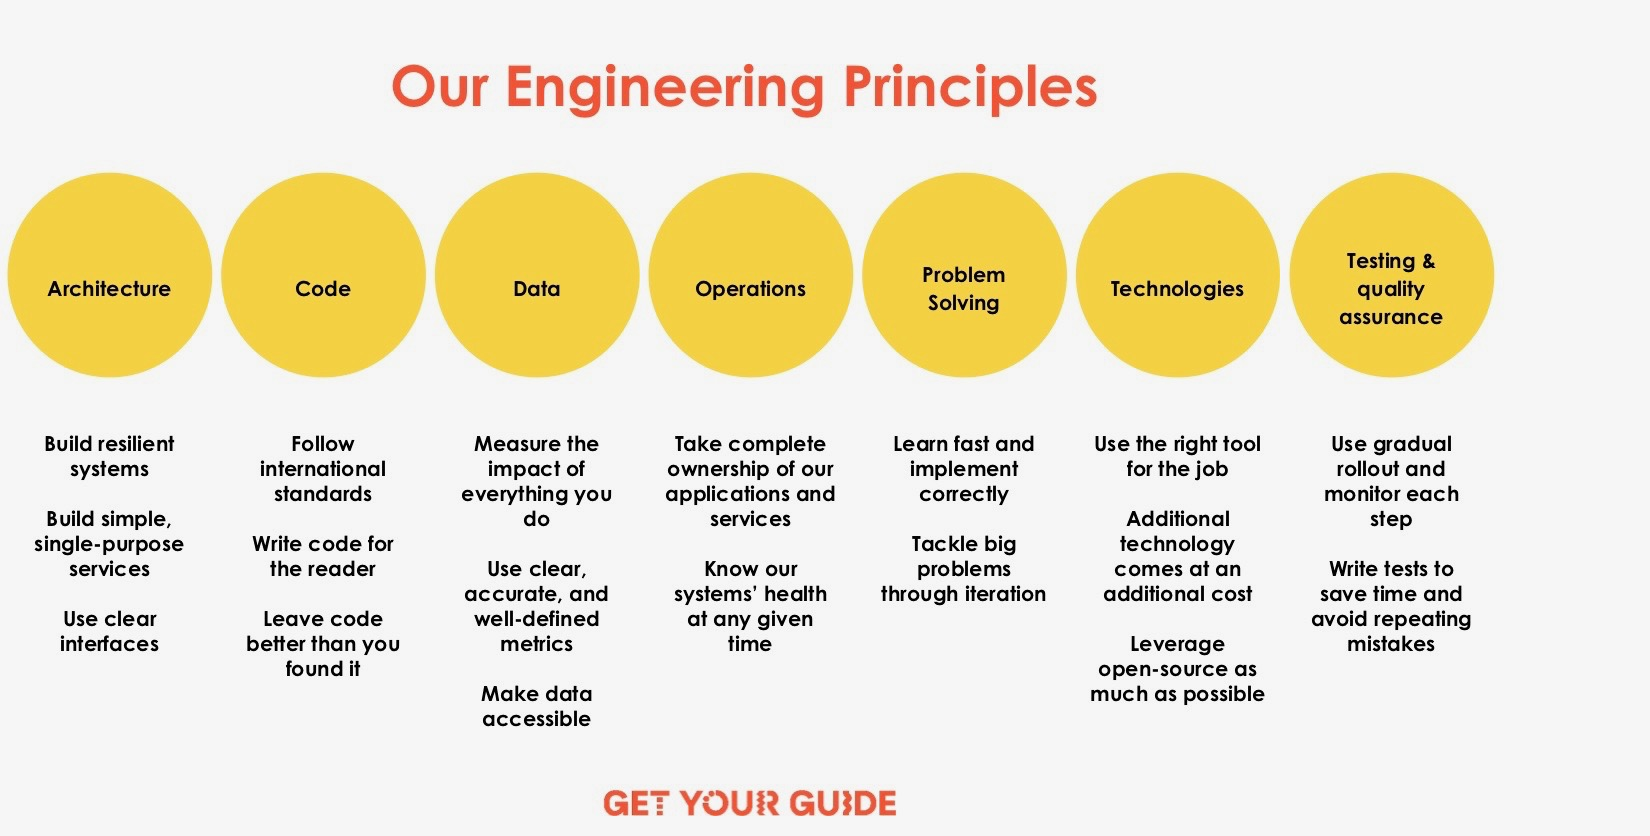 Our Engineering Principles